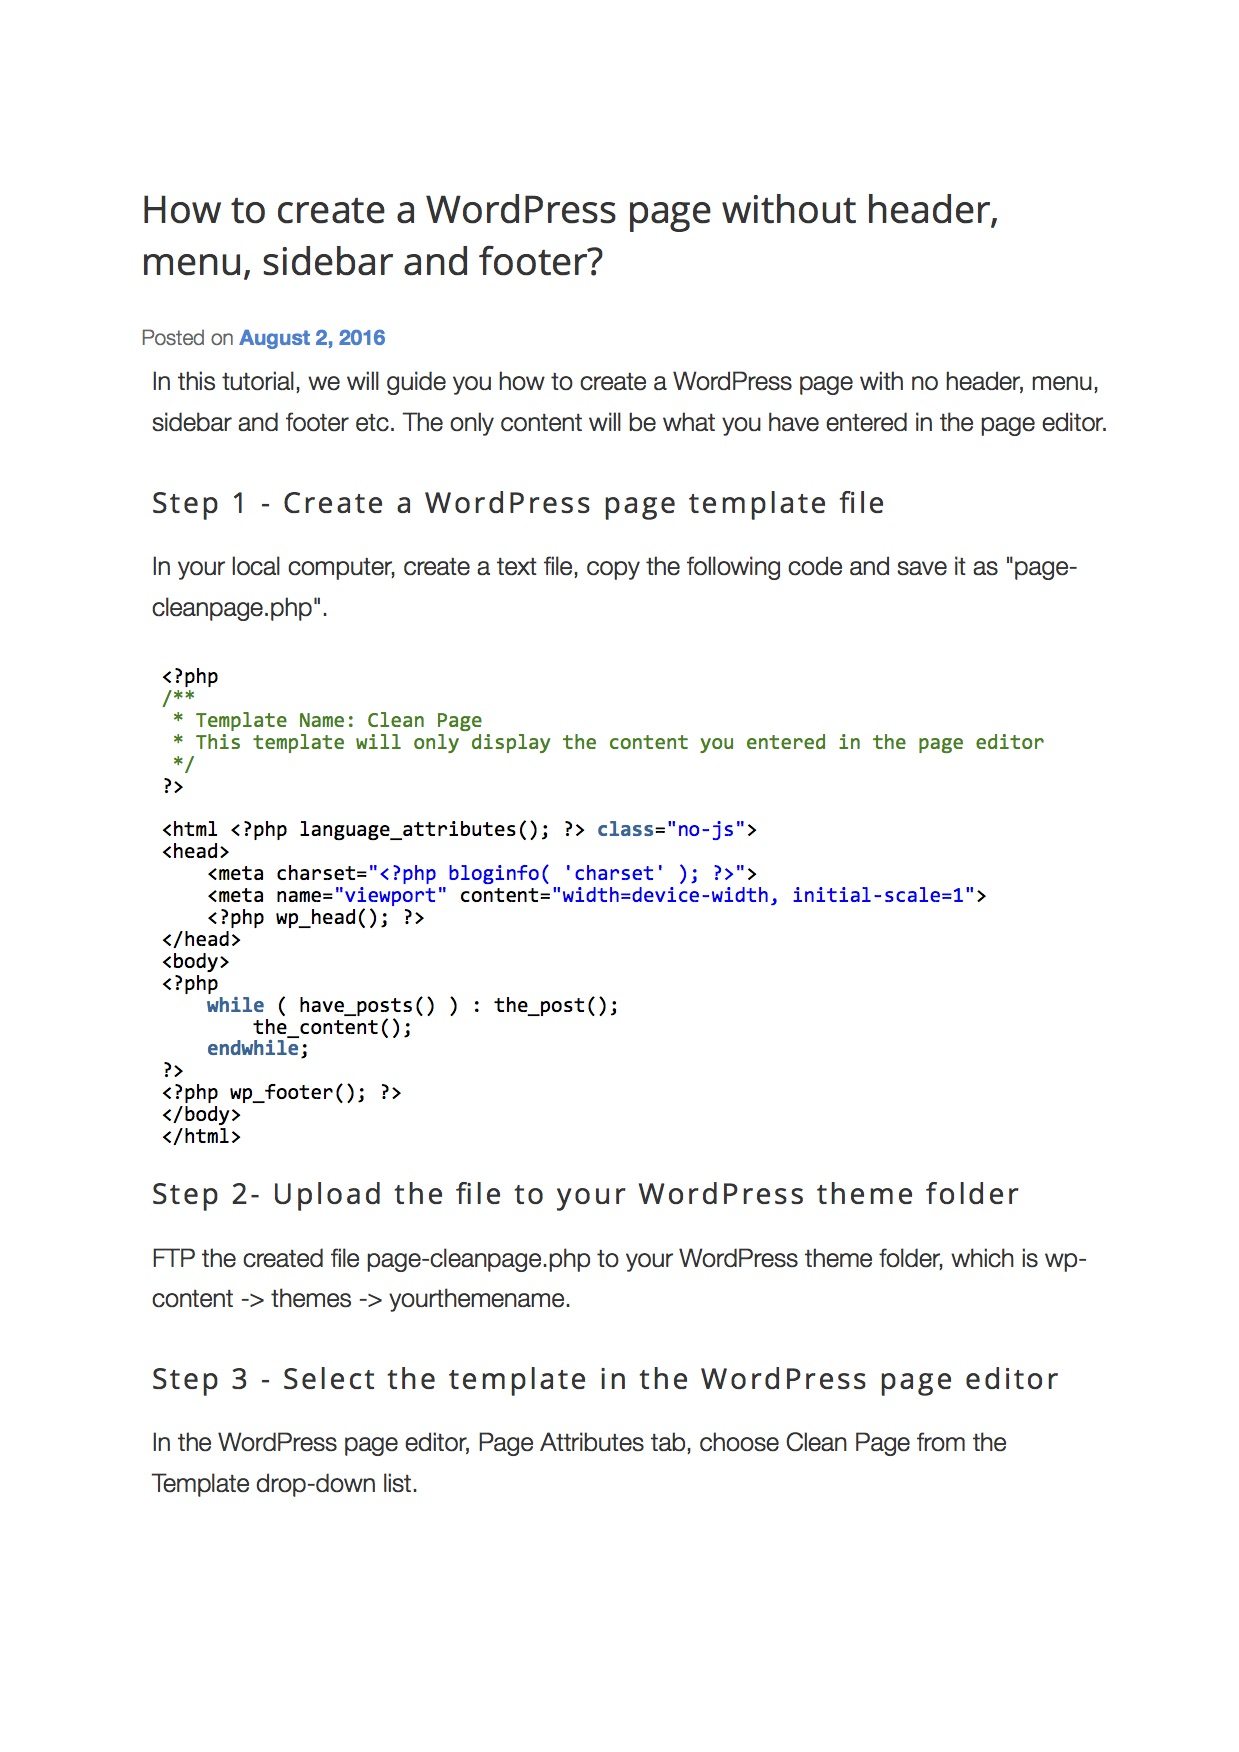 How to create a WordPress page without header menu sidebar and footer